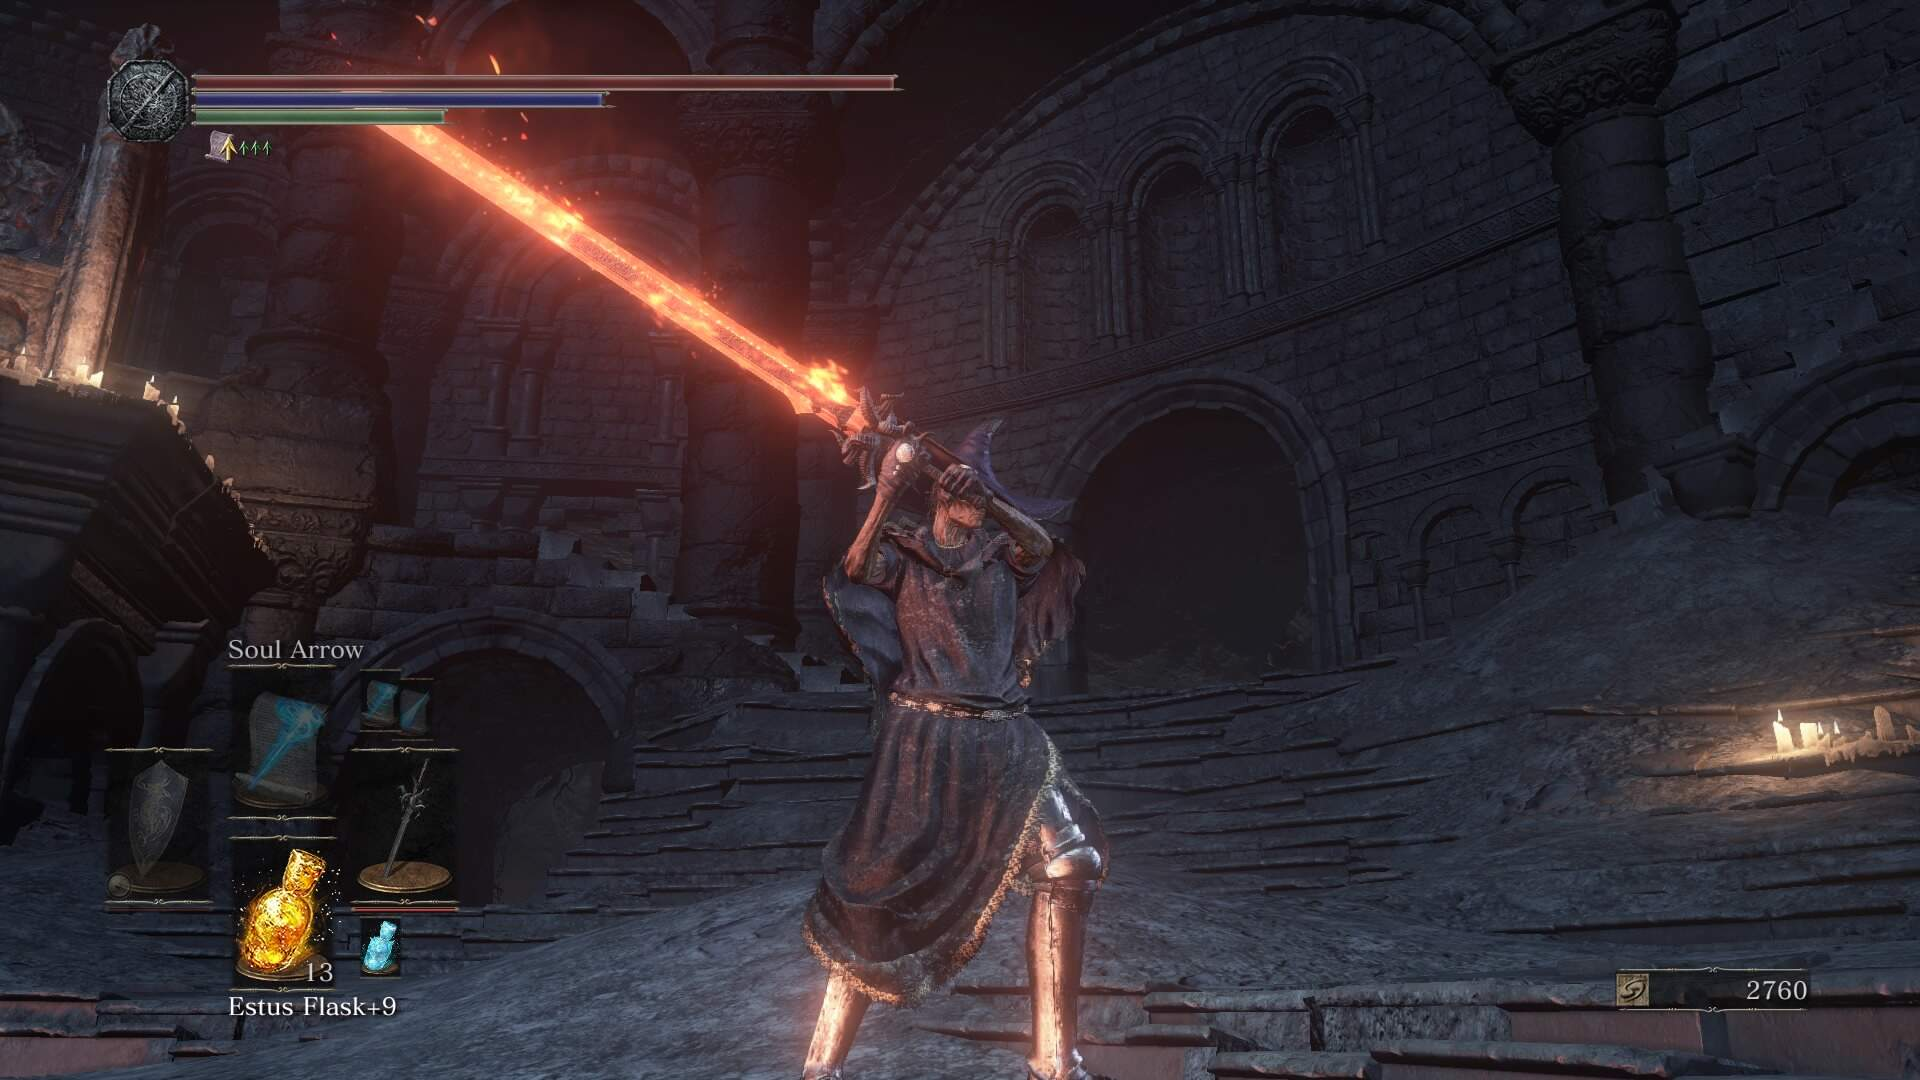 Dark Souls 3: The Ringed City DLC Walkthrough – The Best Weapons to Use for PvP and PvE